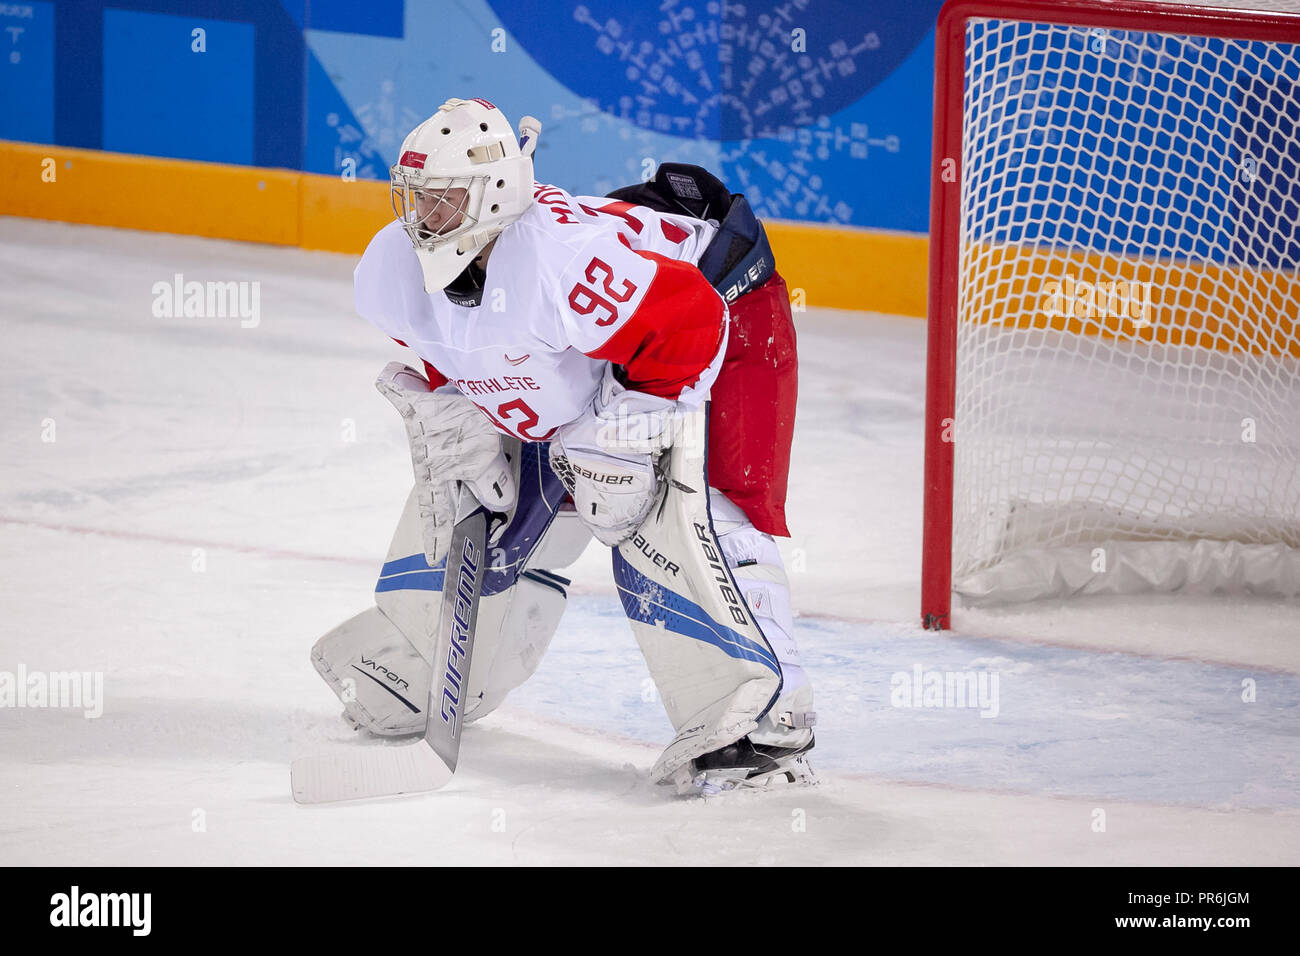 Goalie Nadezhda Morozova (OAR) during Team OAR vs Team Cananda competing in Women's hockey at the Olympic Winter Games PyeongChang 2018 - Stock Image